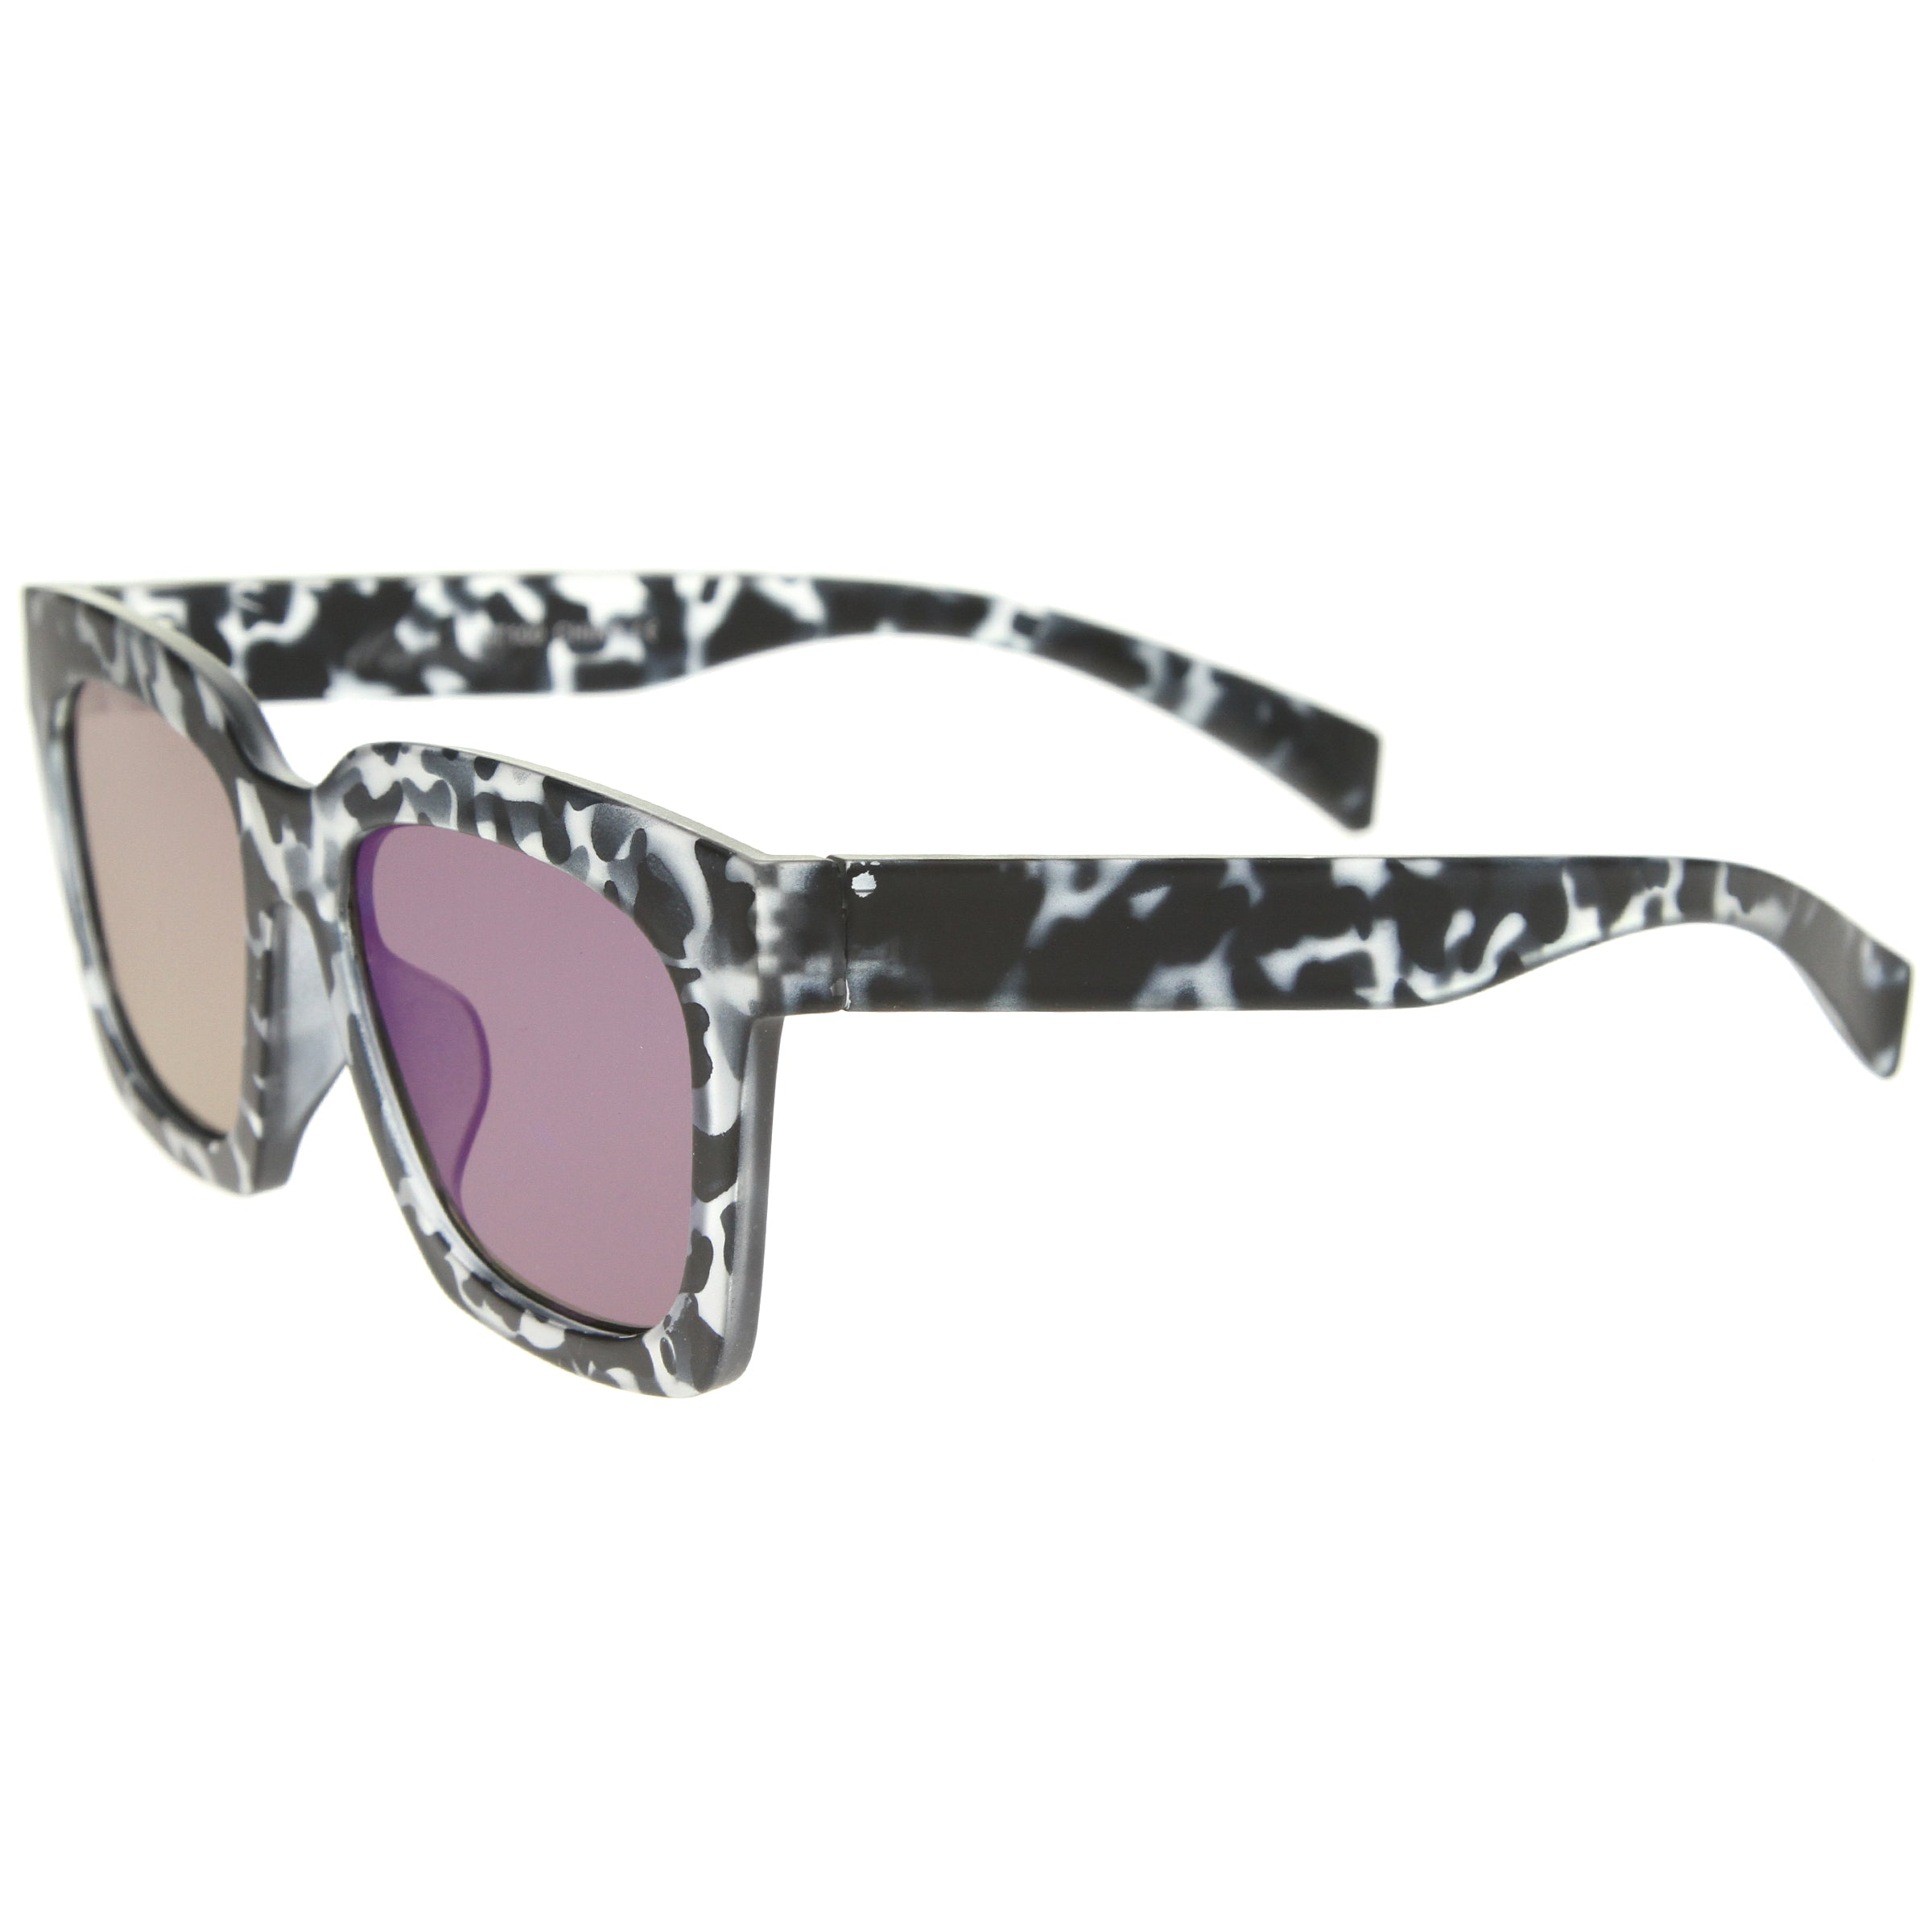 Retro Matte Horn Rimmed Colored Mirror Flat Lens Oversize Square Sunglasses 54mm - sunglass.la - 15